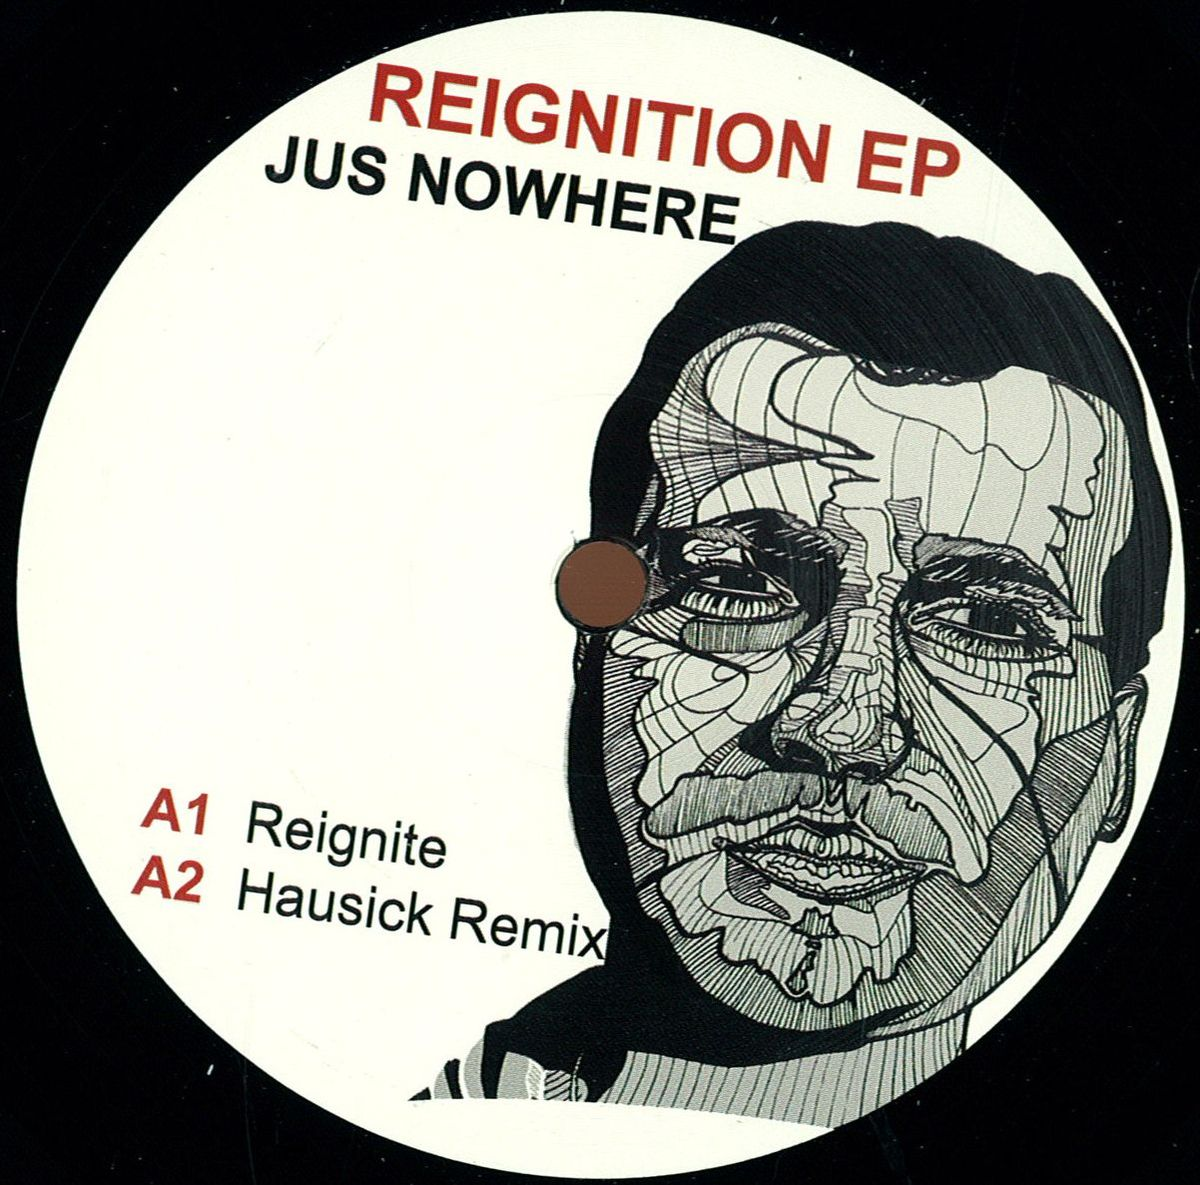 Jus Nowhere Reignition Ep Definition Music Vinyl Record